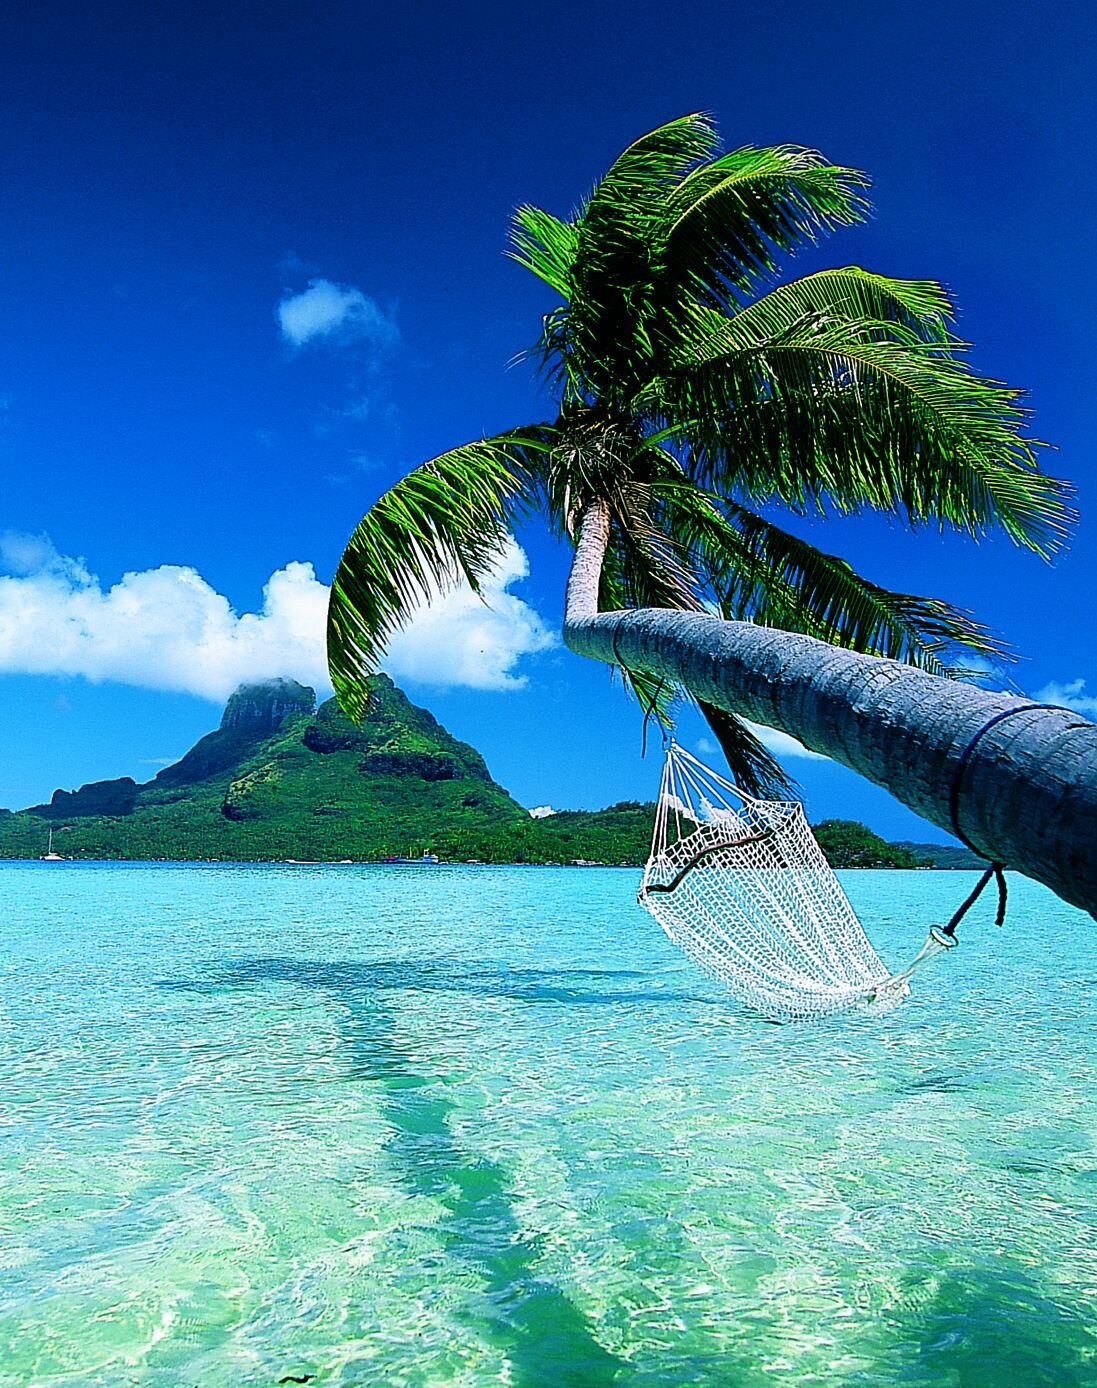 Bora Bora - this doesnt even look real!